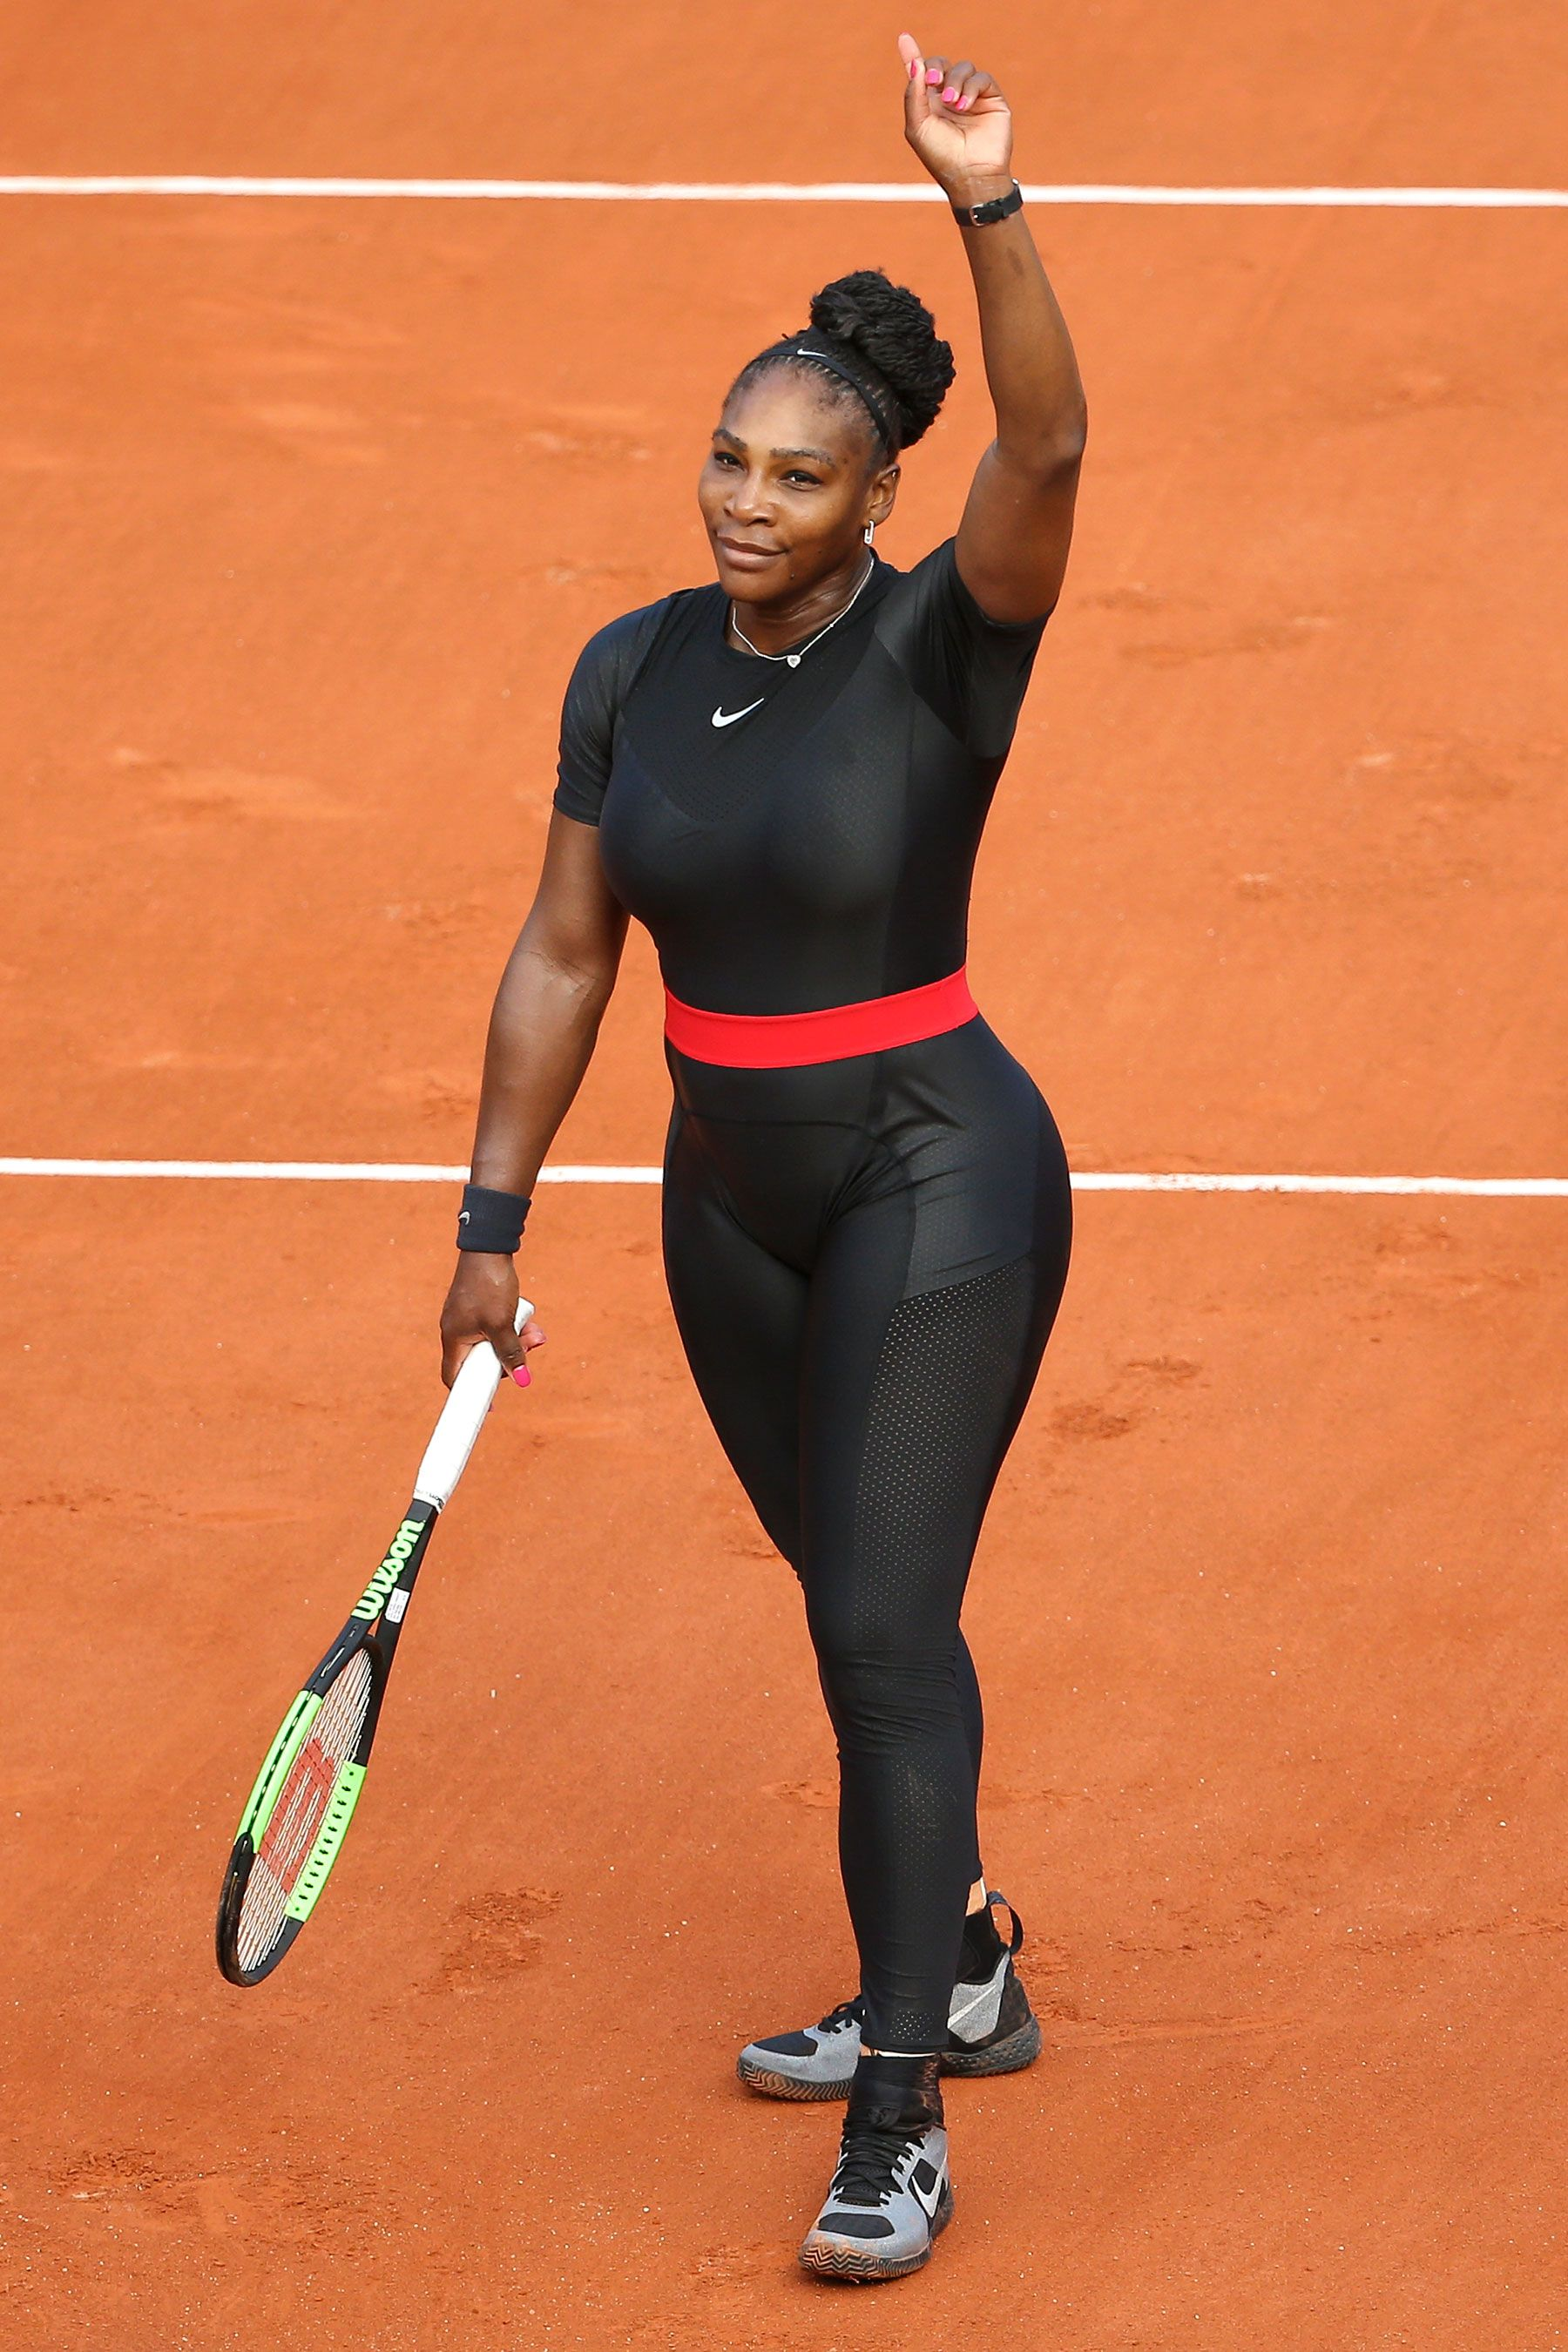 Serena Williams' Comeback Catsuit at the French Open Had a Powerful Message for Moms